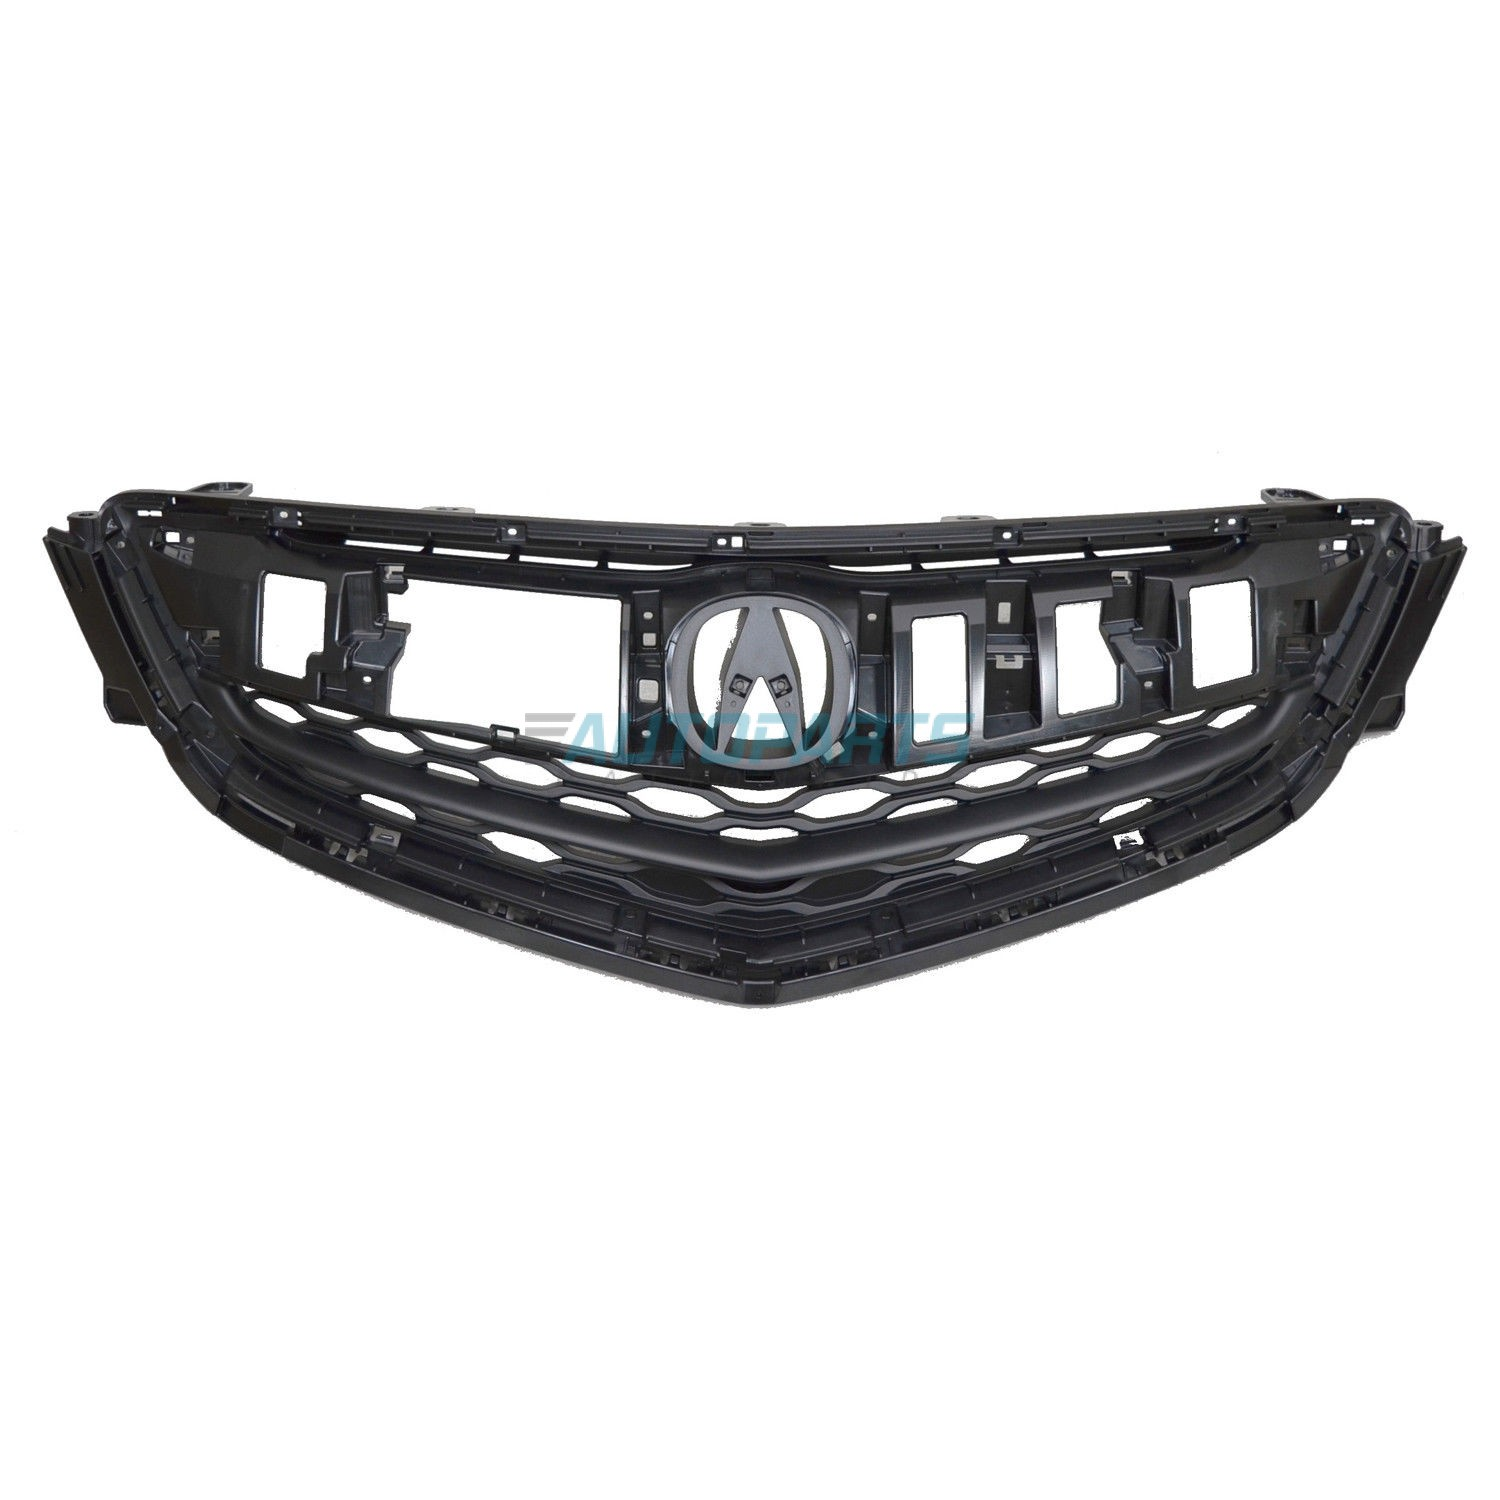 Grille Matte-Black Plastic Fits 2015-2017 Acura TLX